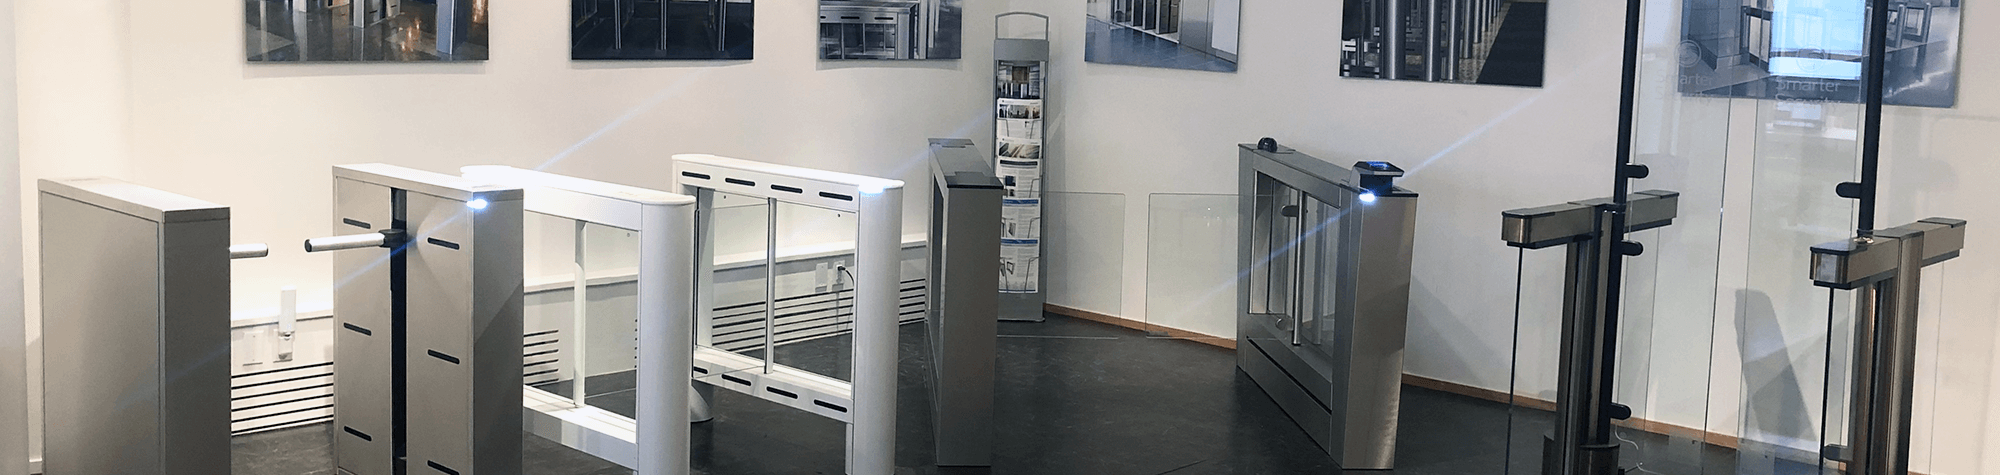 In the Fastlane®: Optical Turnstiles On Display in NYC